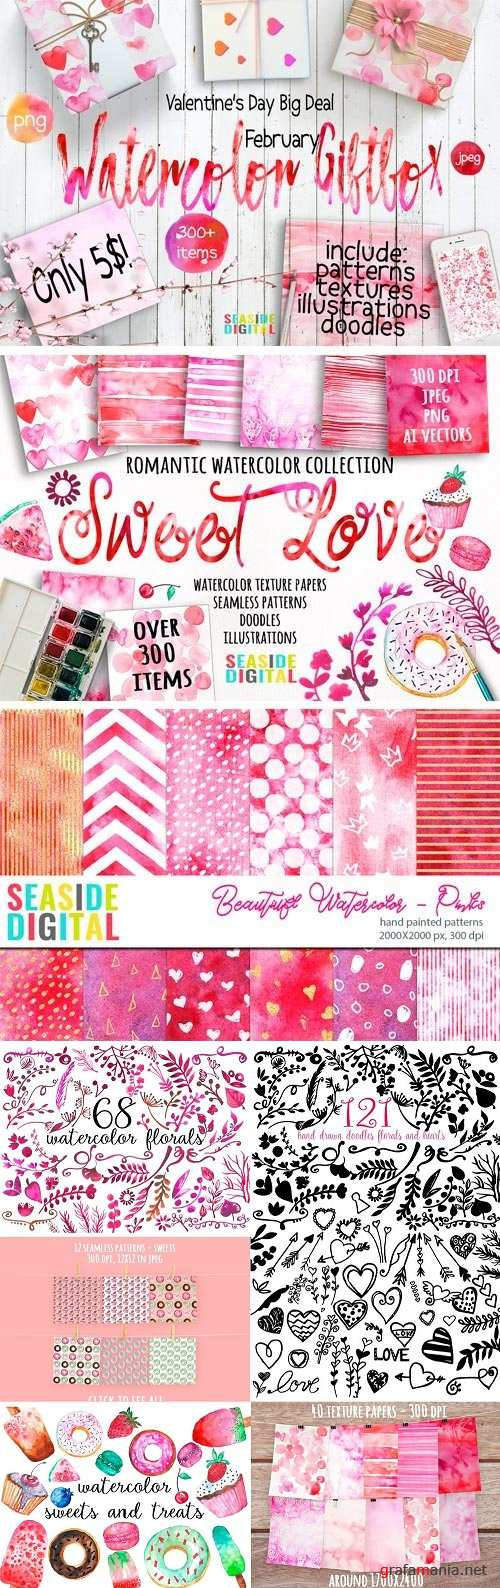 Watercolor Giftbox - February Deal - 1228782